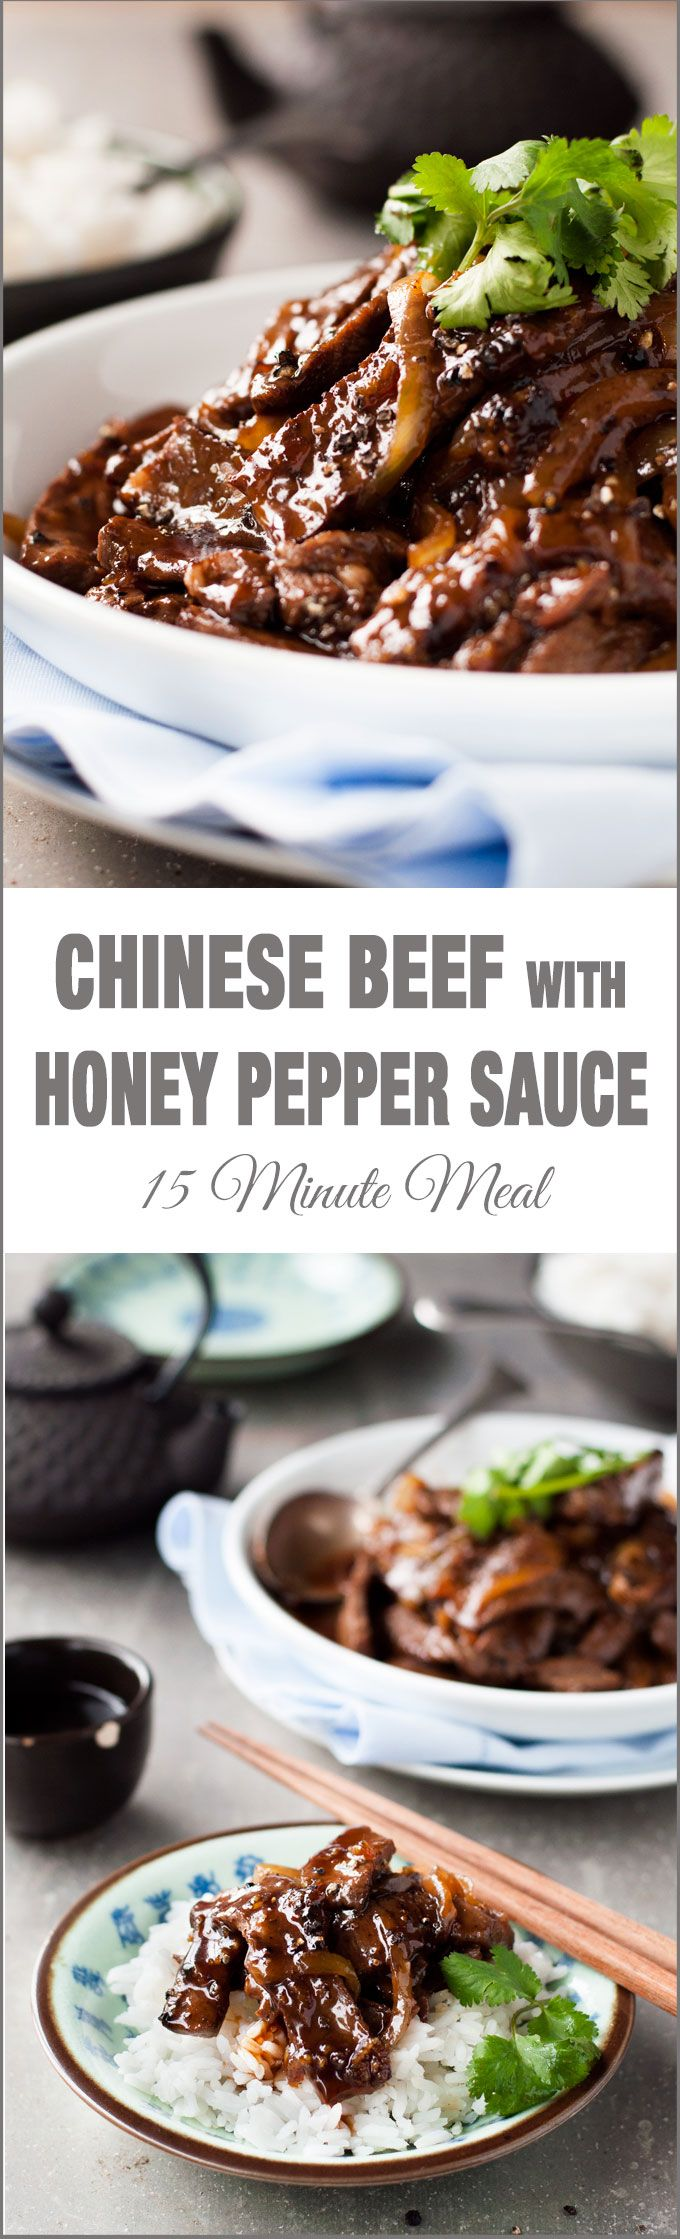 Chinese Beef With Honey Black Pepper Sauce A Restaurant Favourite At Home In 15